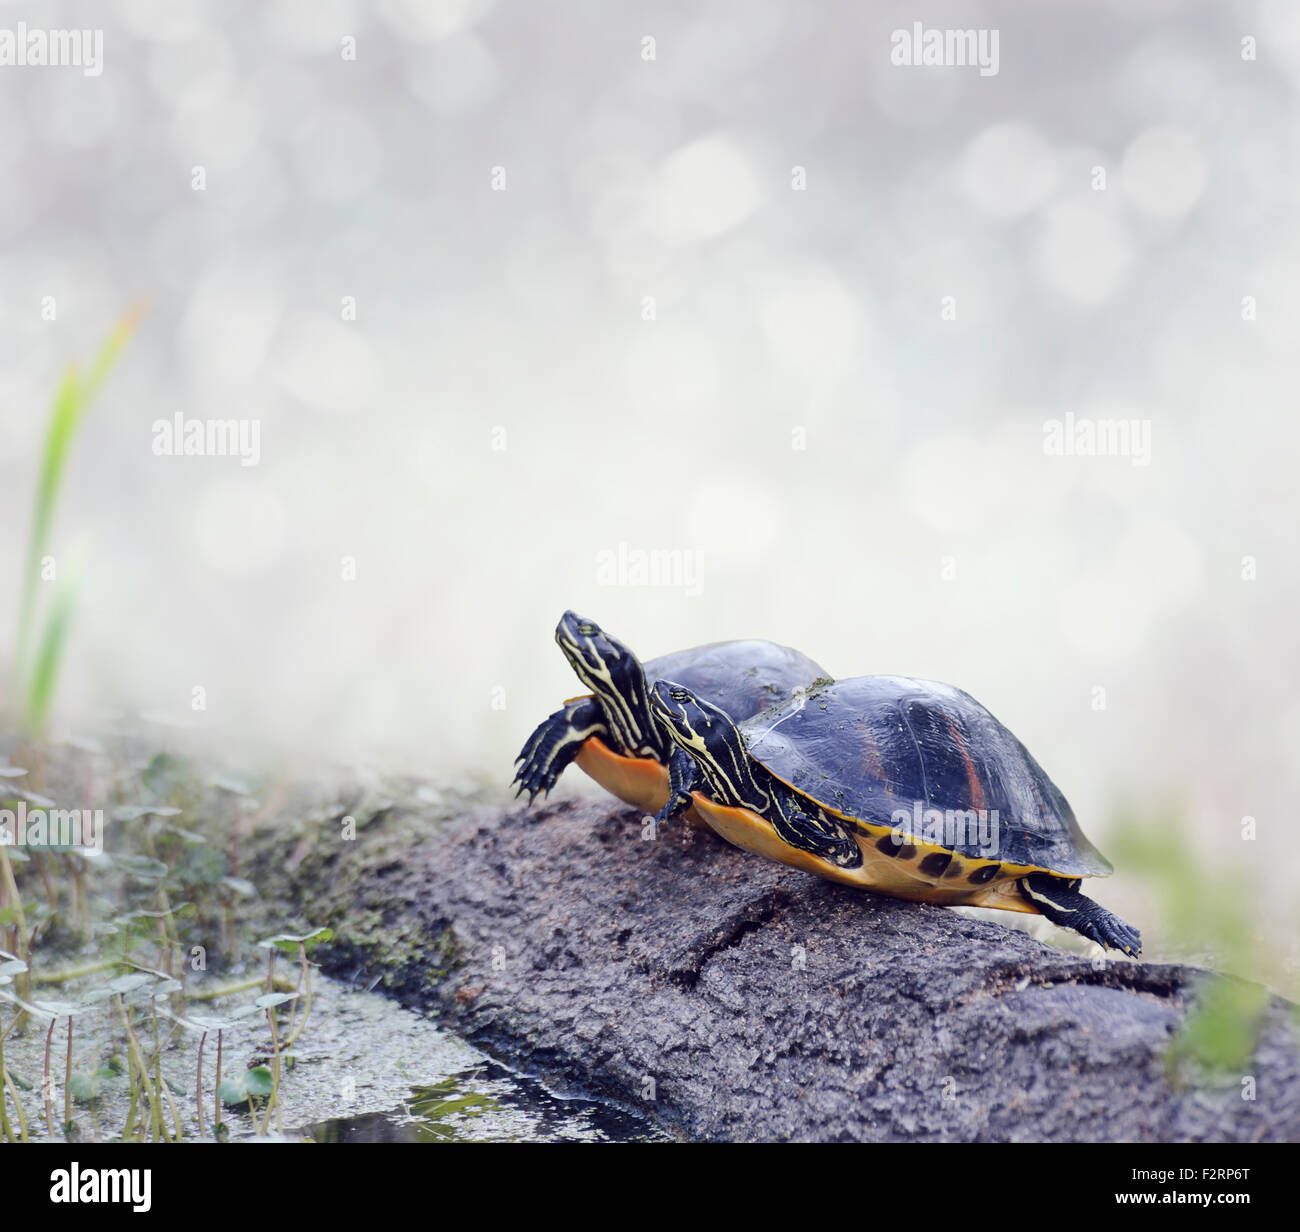 Florida Cooter Turtles On A Log - Stock Image